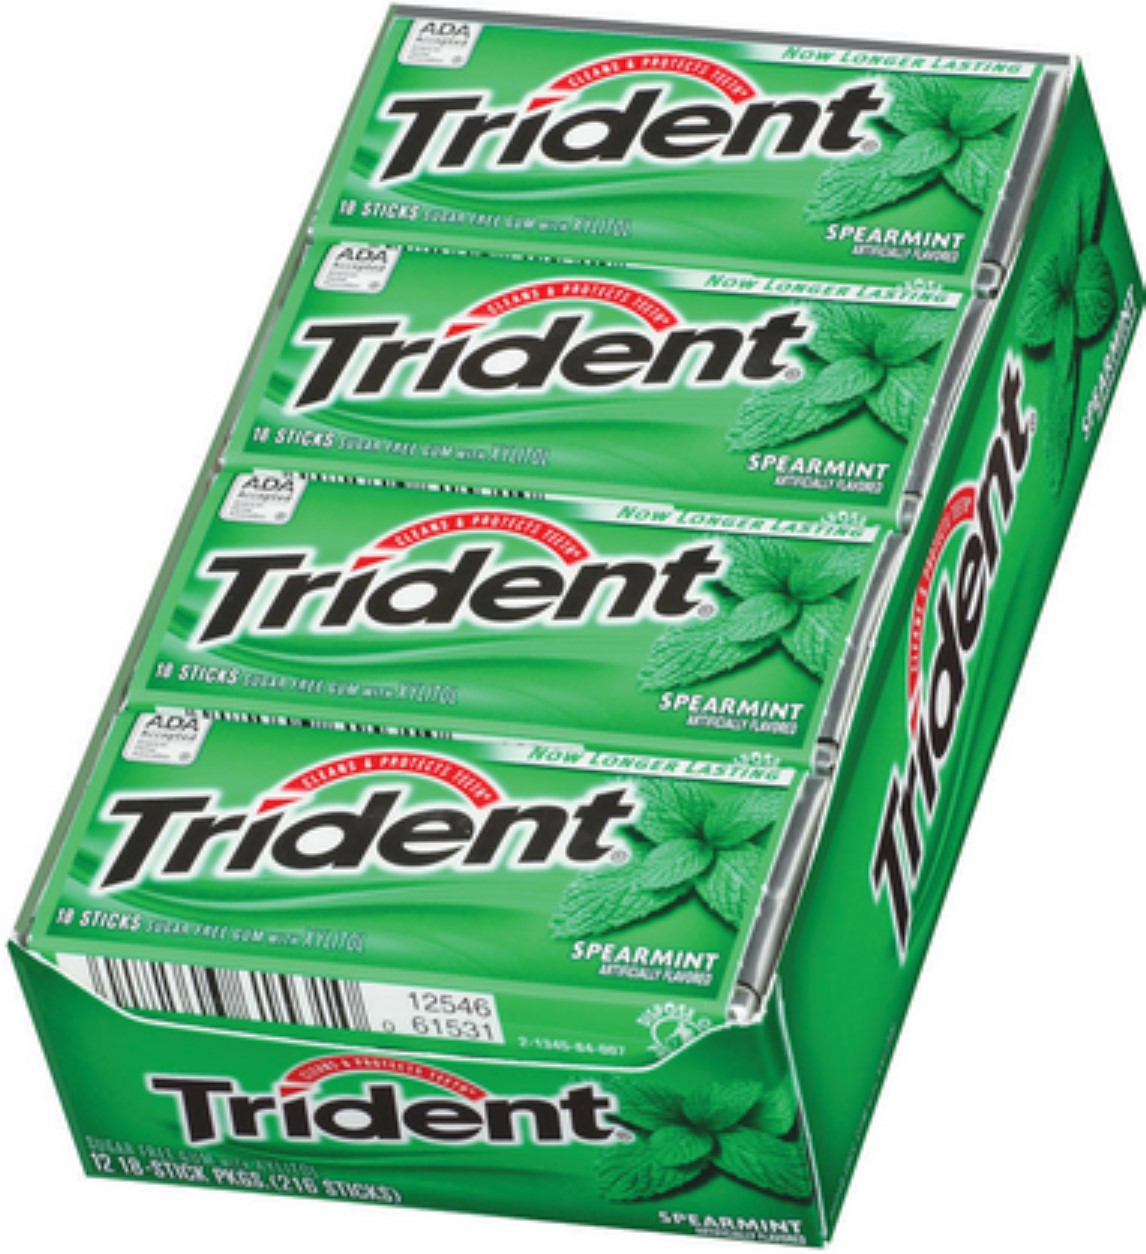 Trident Systems 6 Pack - Trident Sugar Free Gum Spearmint...